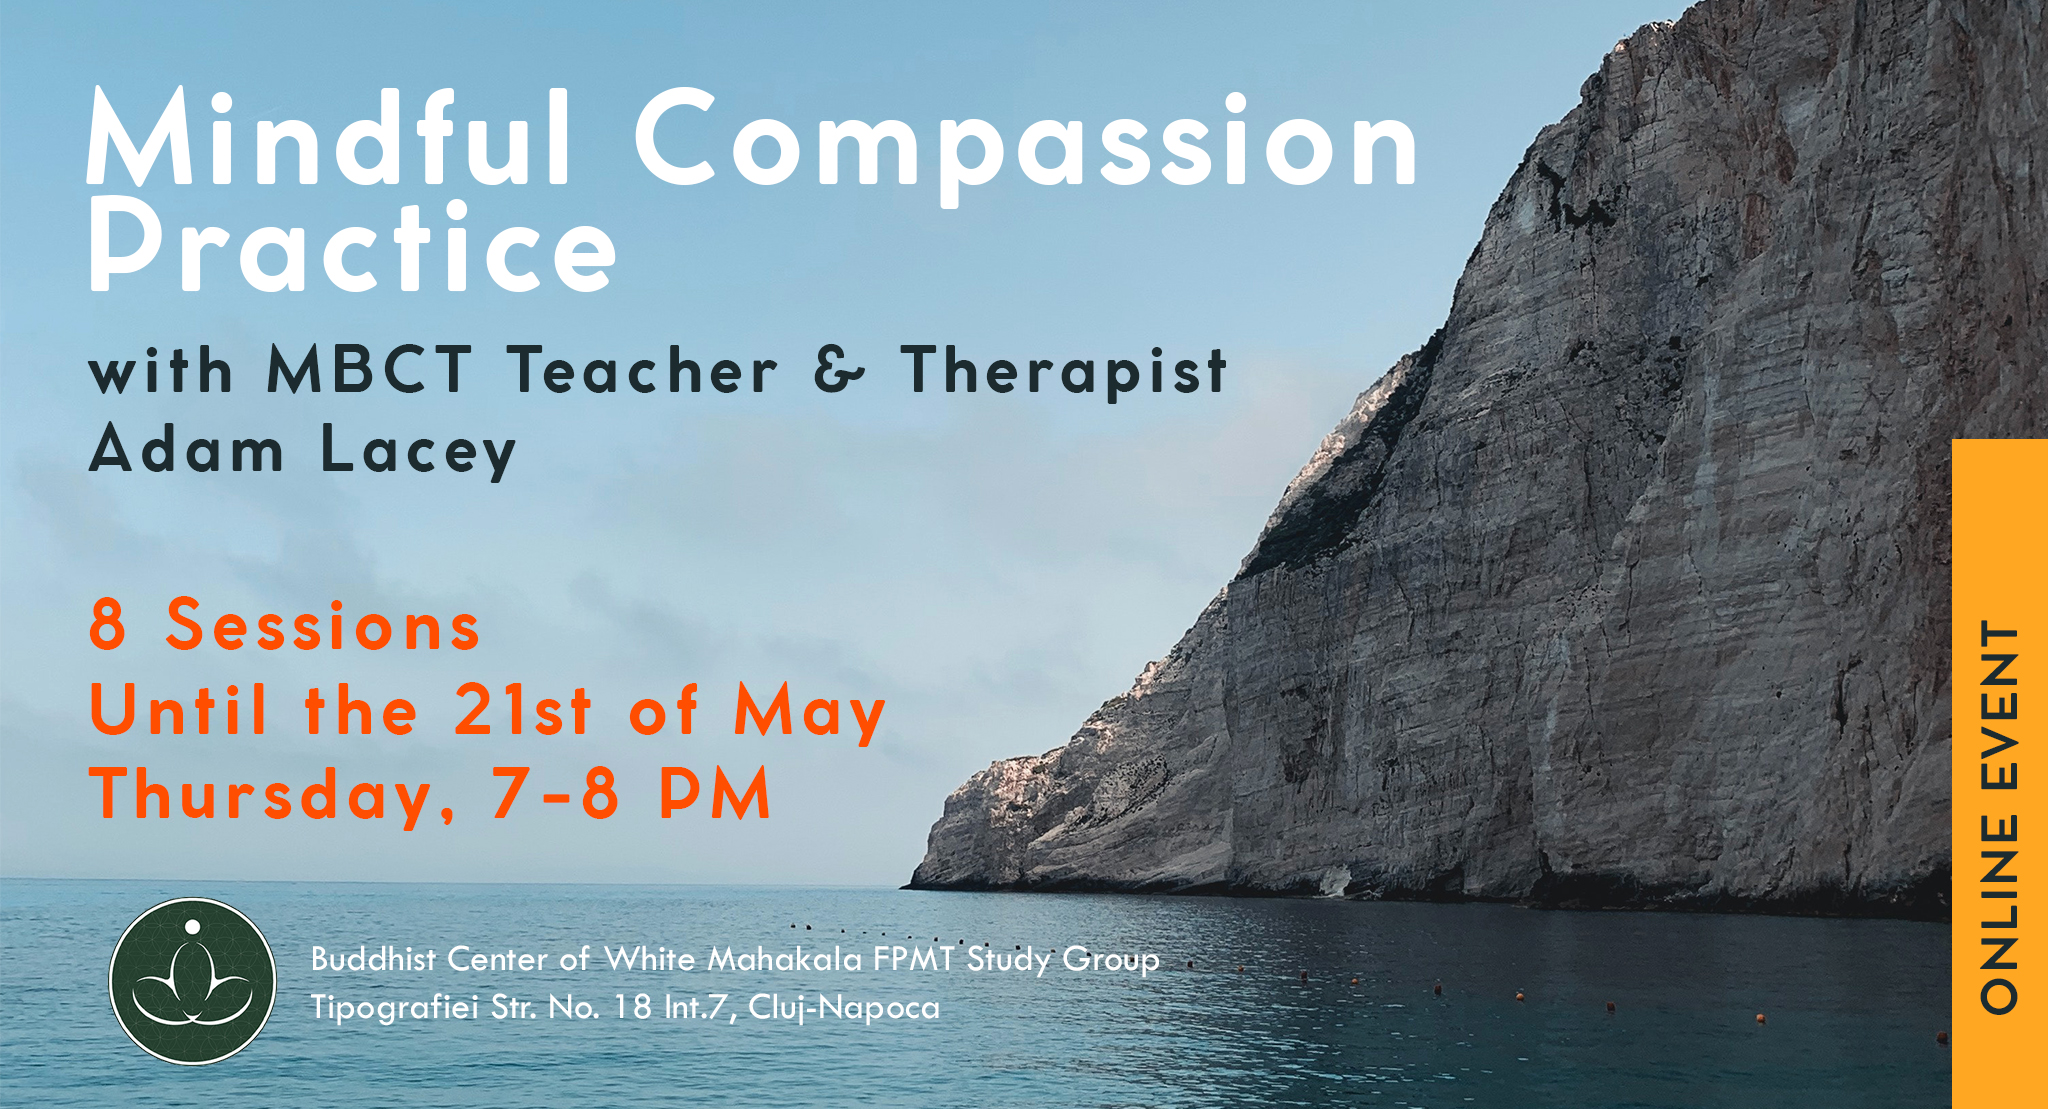 Online Event Mindful Compassion Practice with Adam Lacey